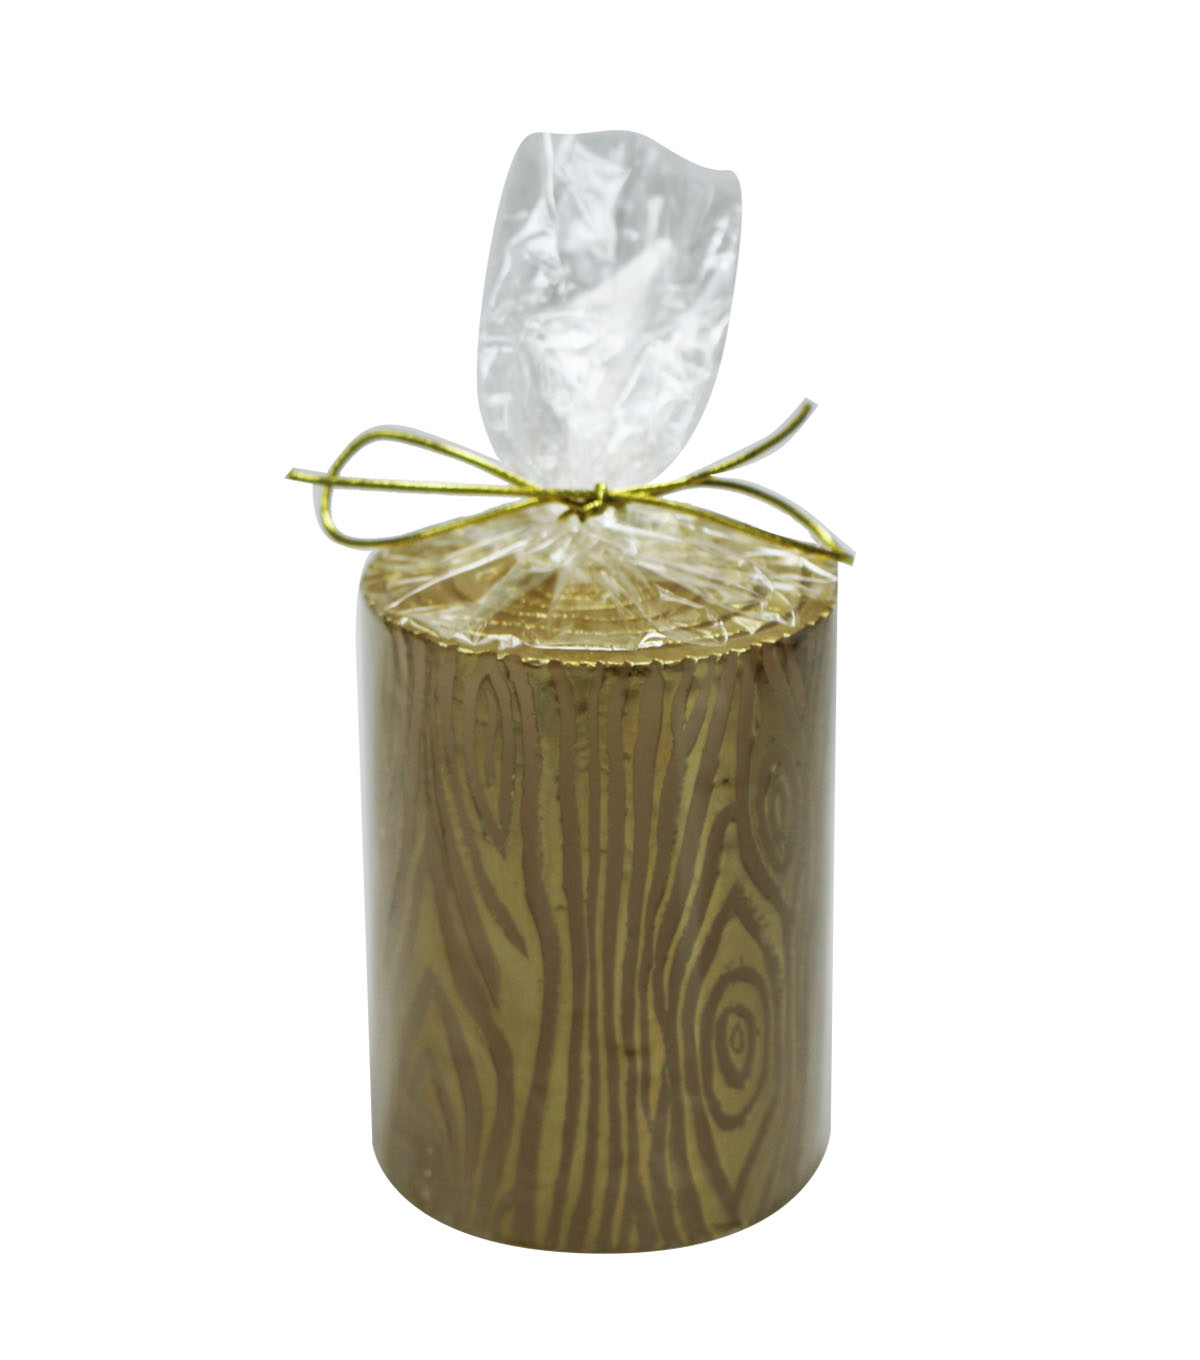 Maker's Holiday 3''x4'' Pillar Candle-Gold Birch